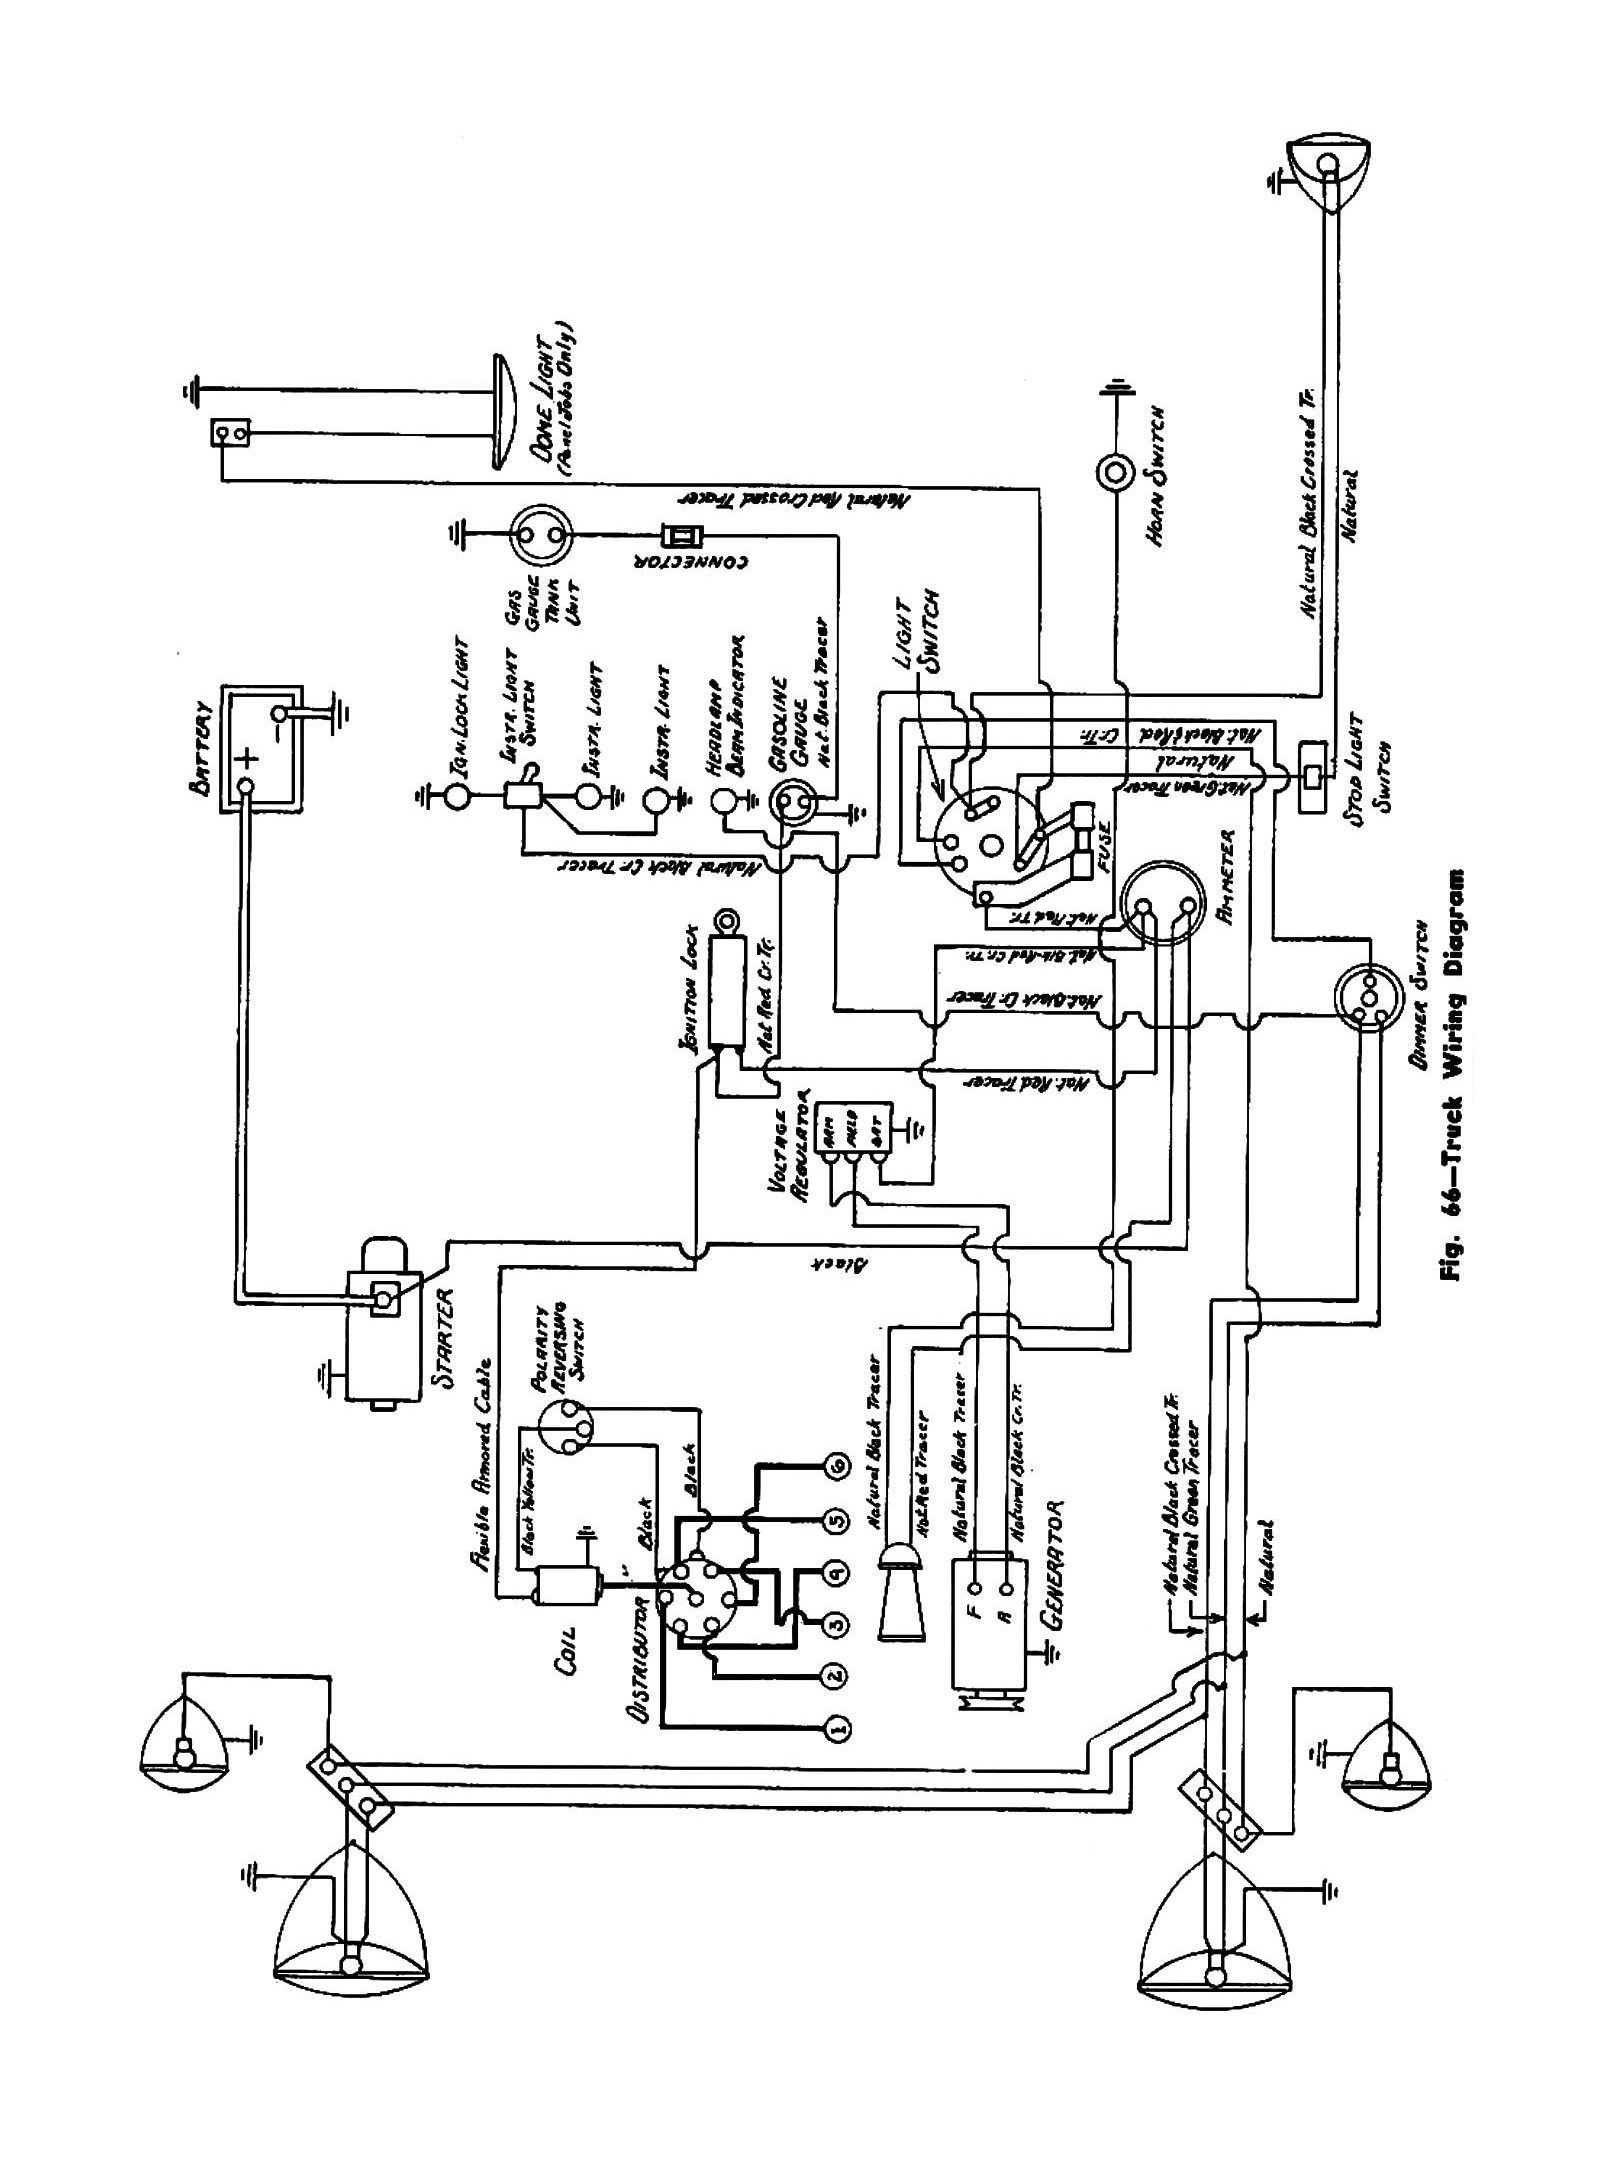 hight resolution of 1955 chevrolet wiring harness